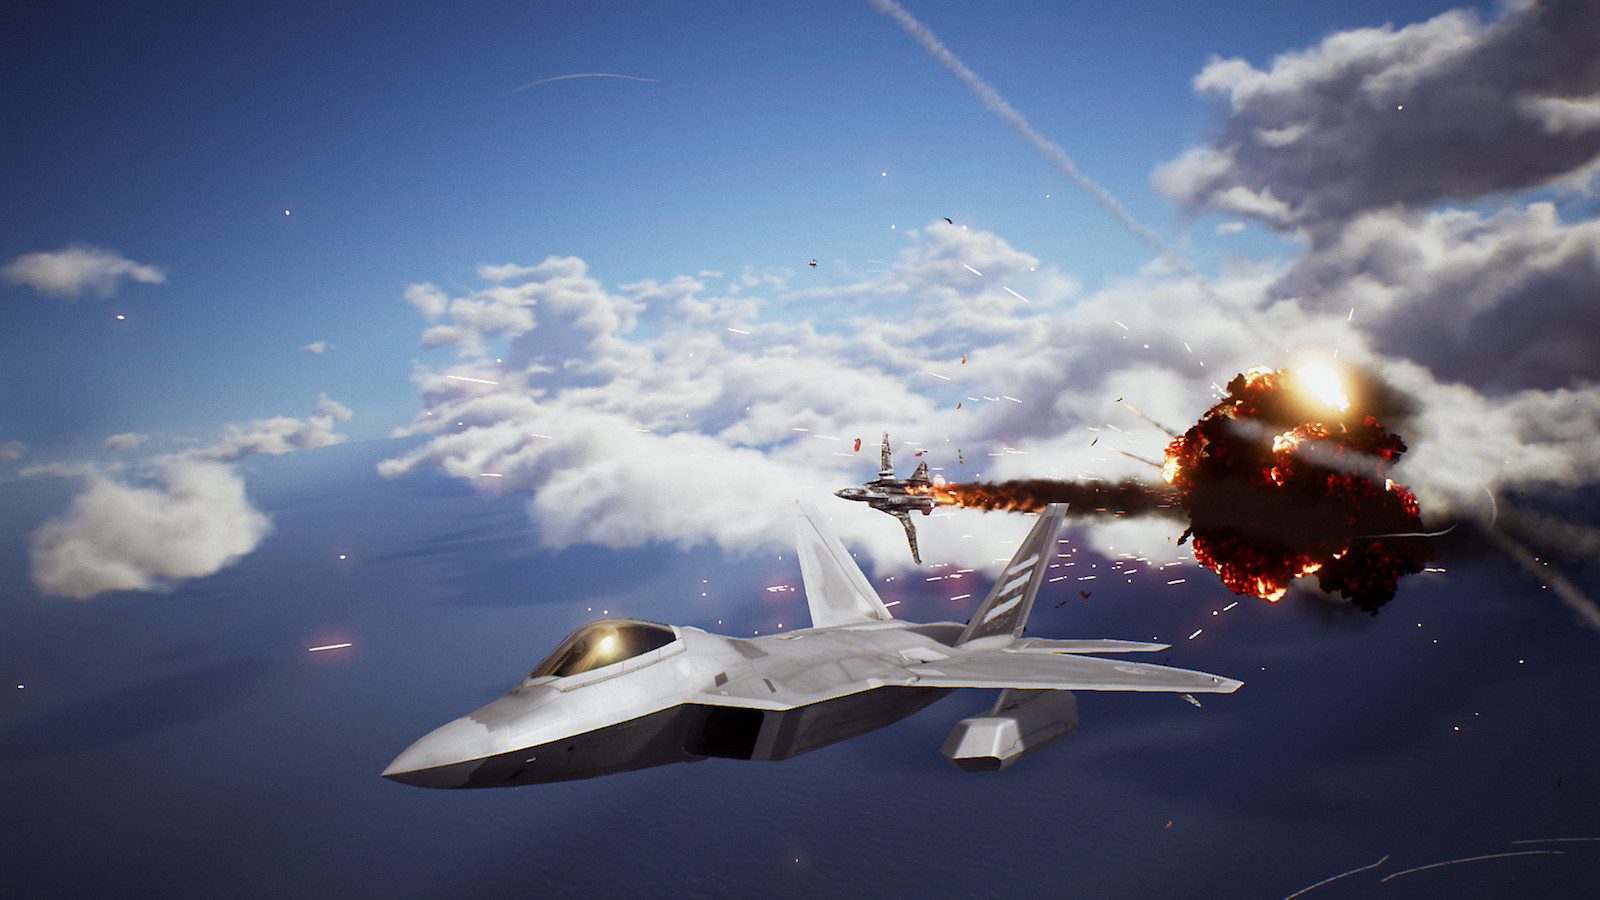 Ace Combat 7: Skies Unknown Will Feature Multiplayer In VR